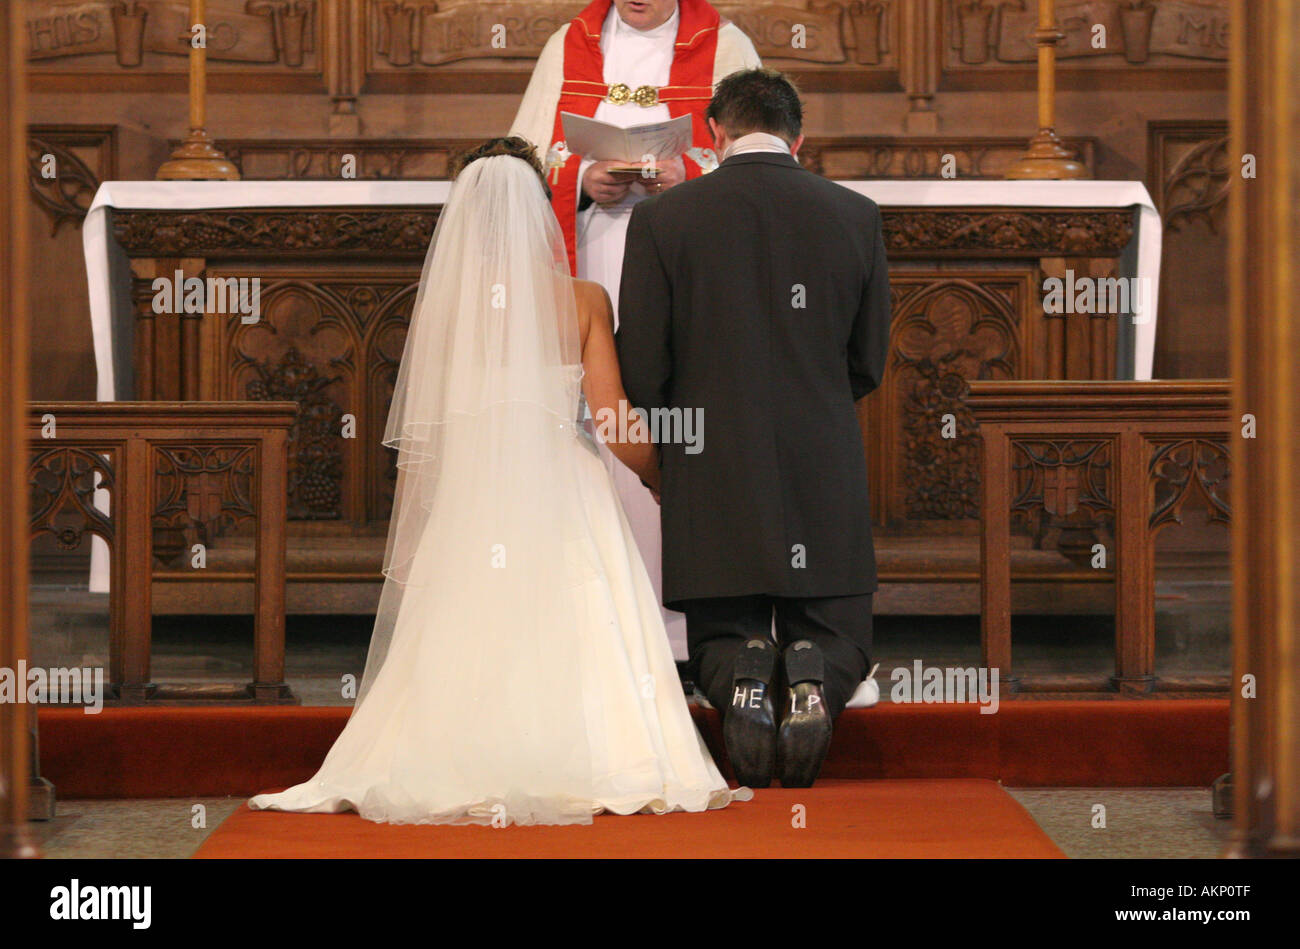 groom with help written on soles of shoes kneels at altar during catholic church wedding ceremony uk funny humorous